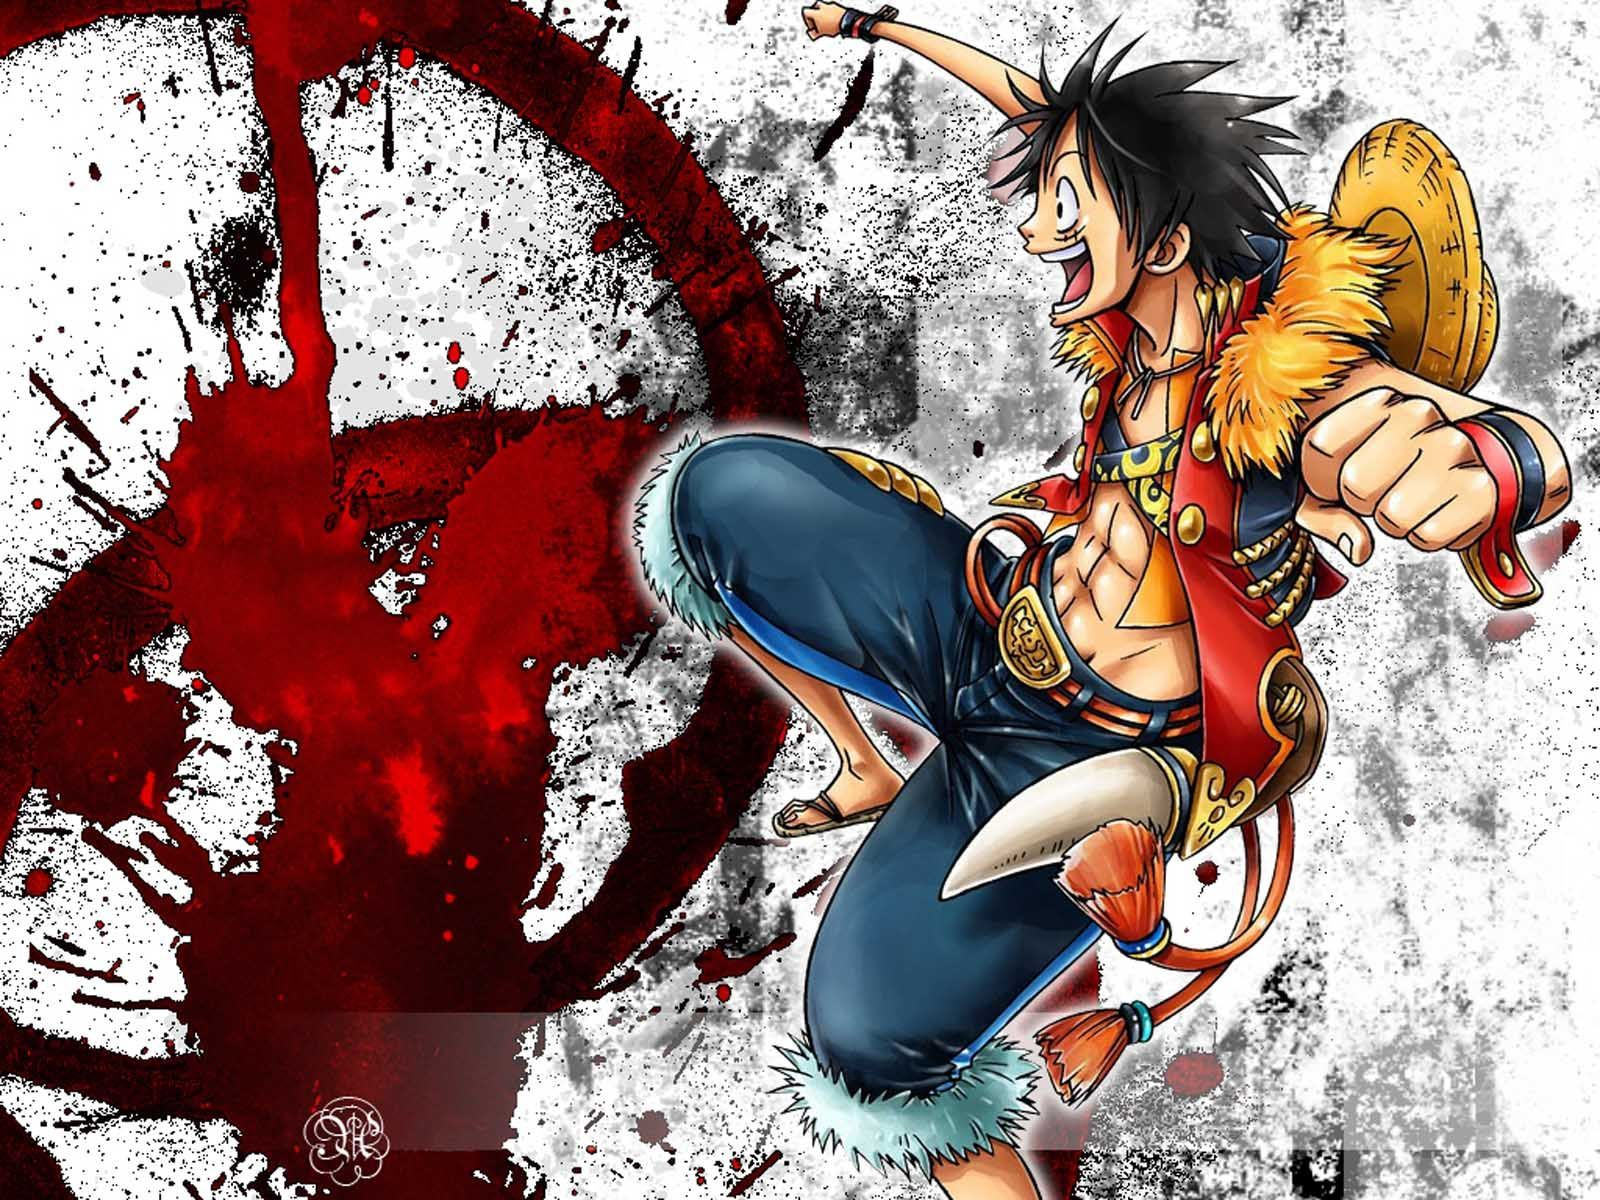 Luffy One Piece Epic Wallpapers Top Free Luffy One Piece Epic Backgrounds Wallpaperaccess